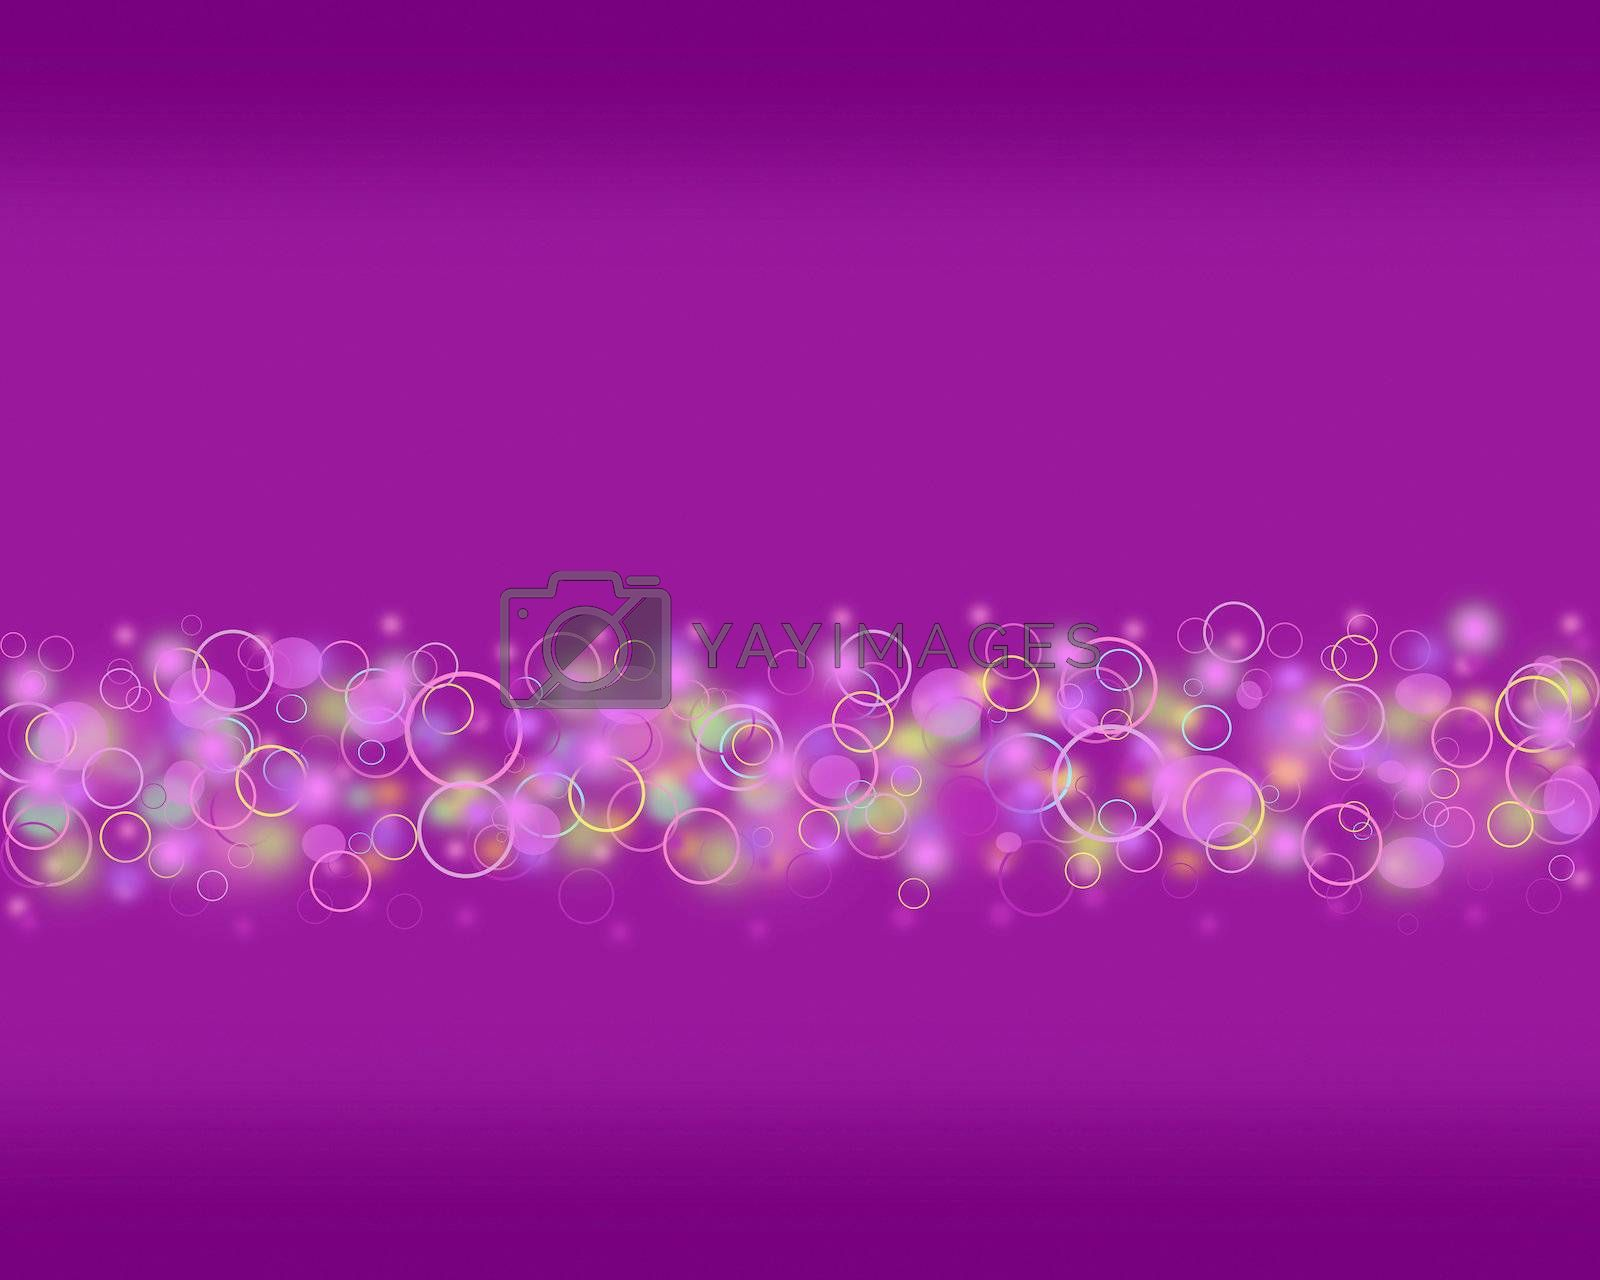 Abstract purple circle background